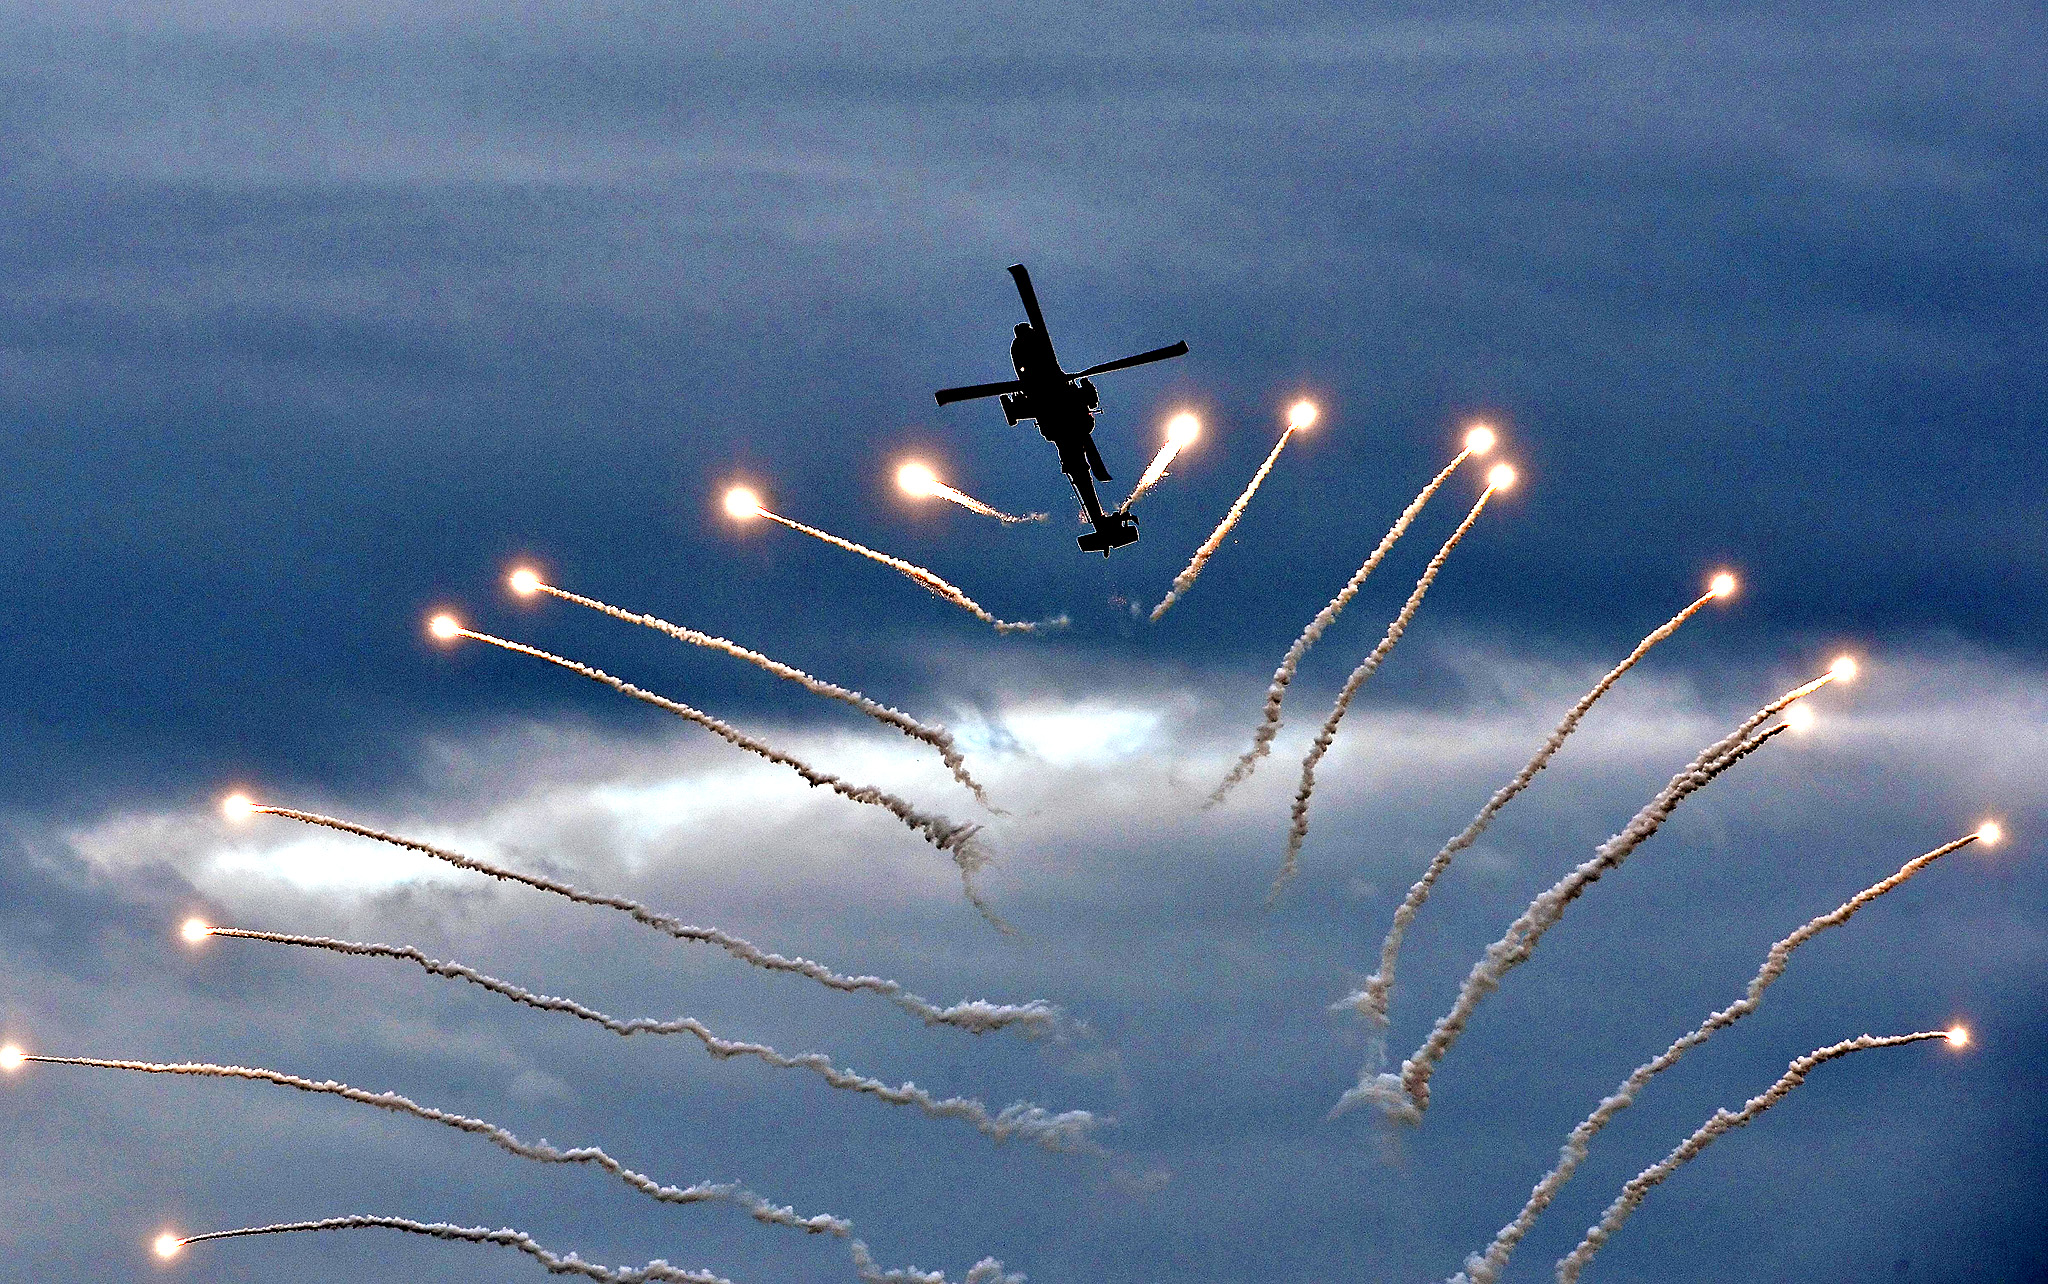 A Greek Army Apache helicopter takes part in an air show at Athens Paleo Faliro coastal suburb  on September 25 , 2014. The show was a pre-event for  Athens annual Flying Week  at the weekend at an airfield north of Athens.